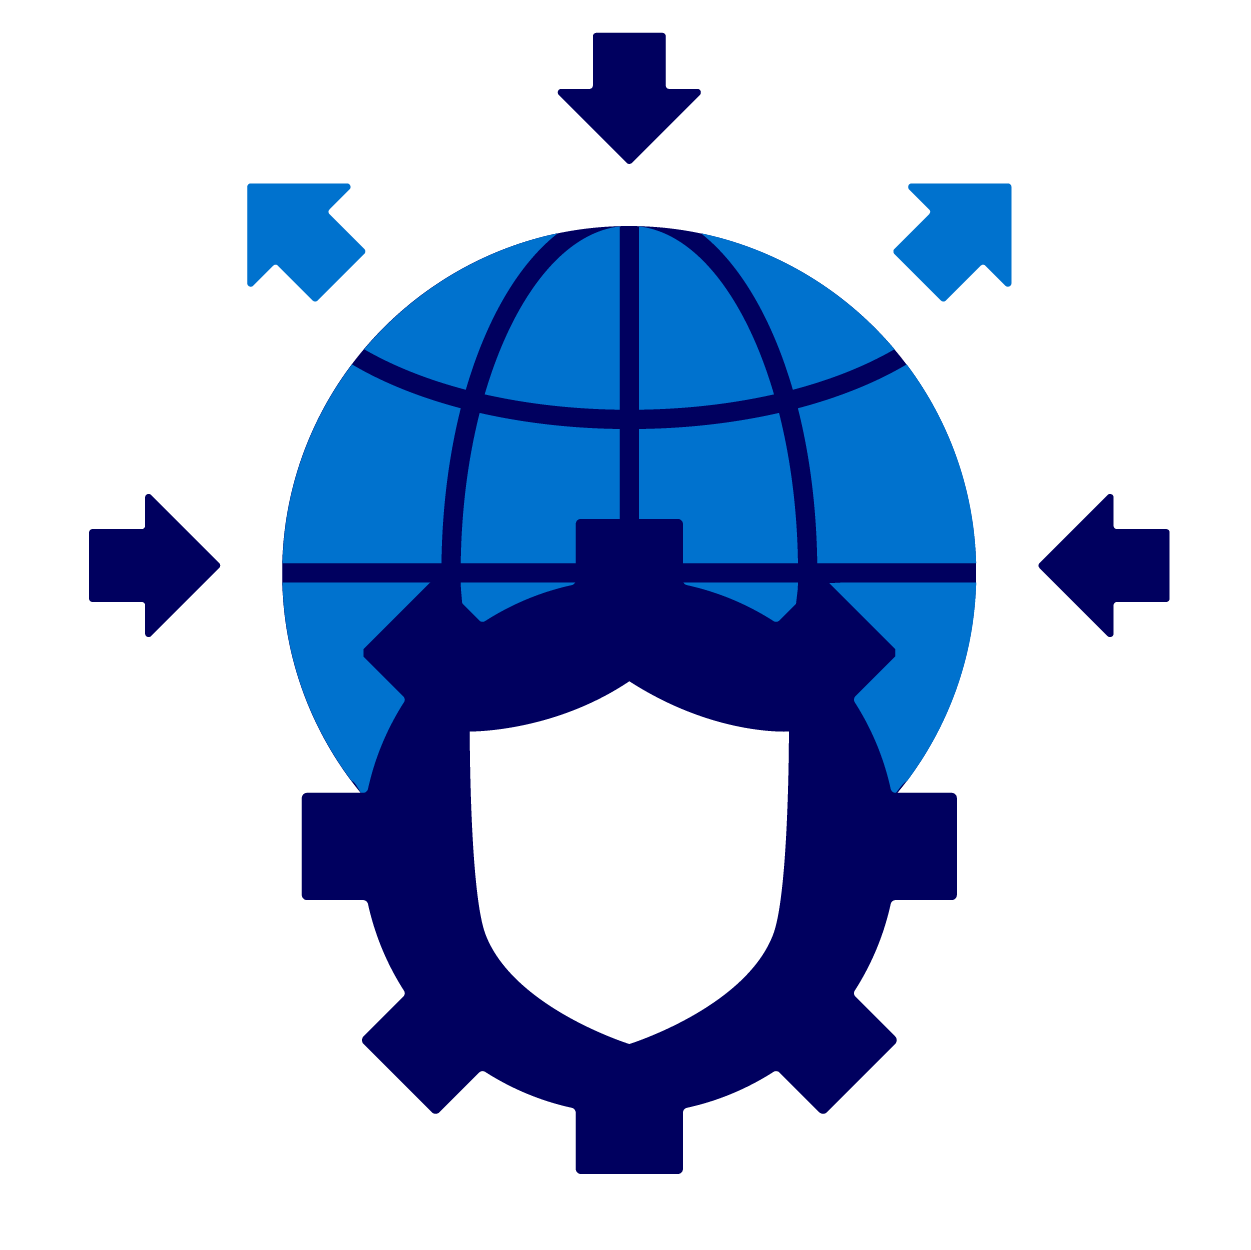 TrinityCyber_icons_V4_SecuredInternetTraffic